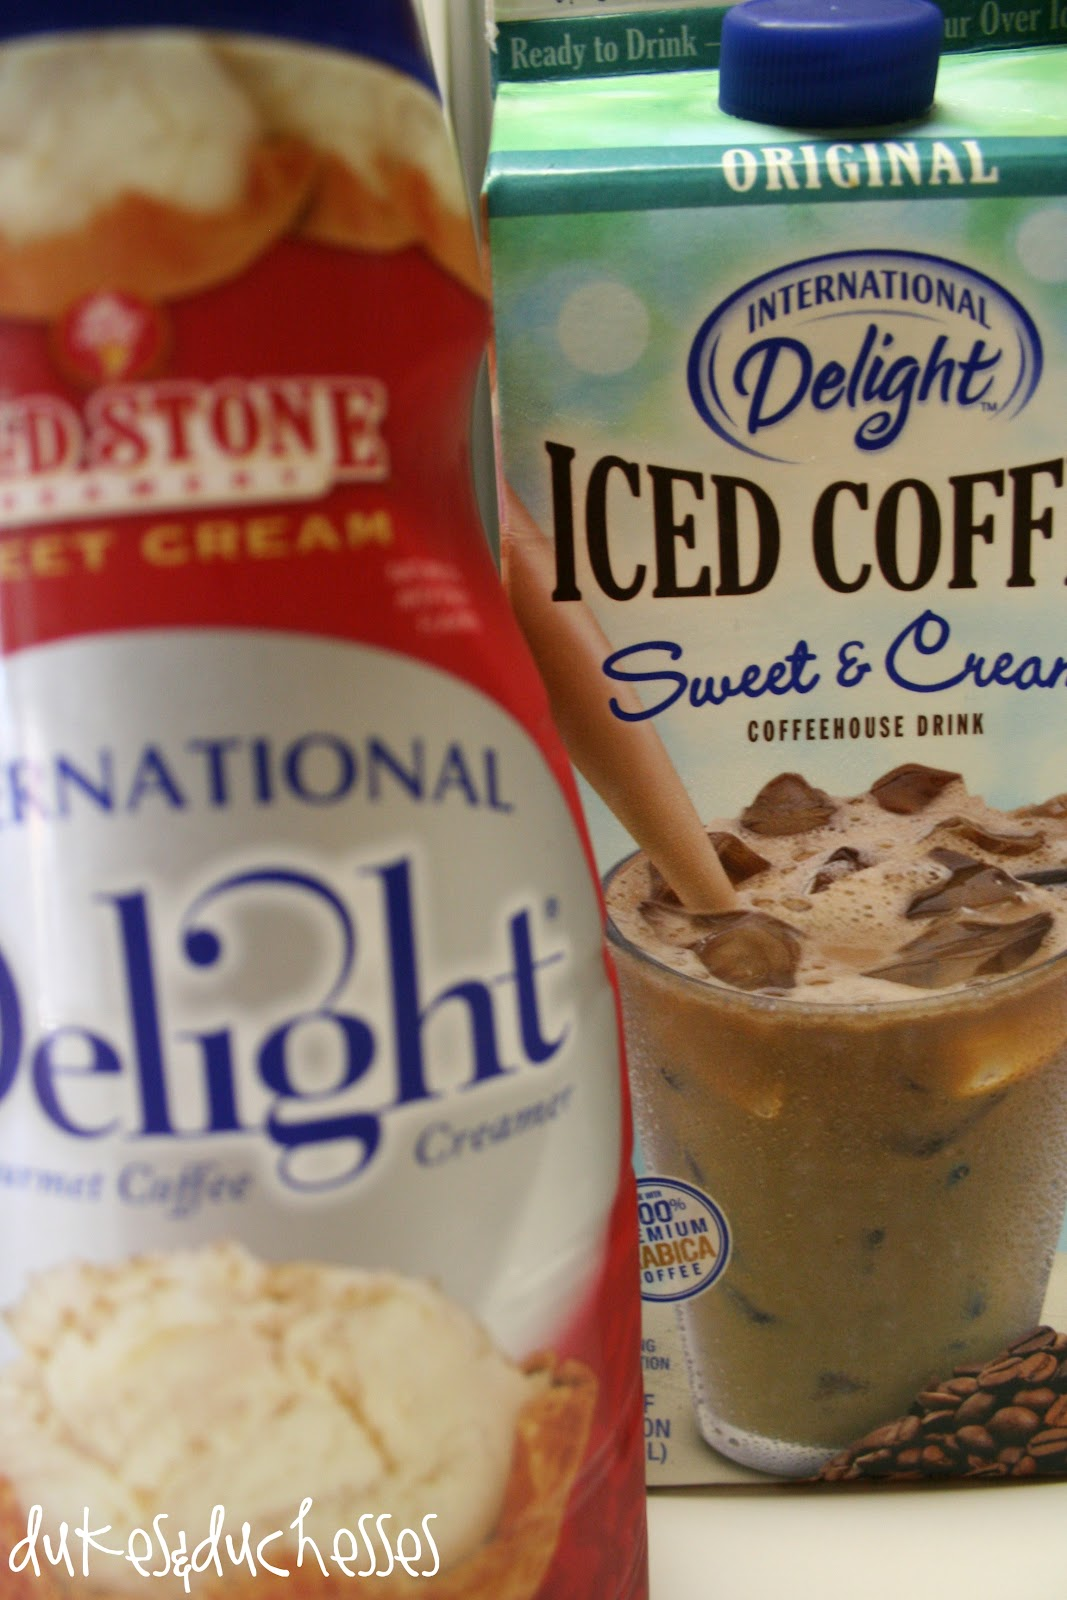 International Delight Iced